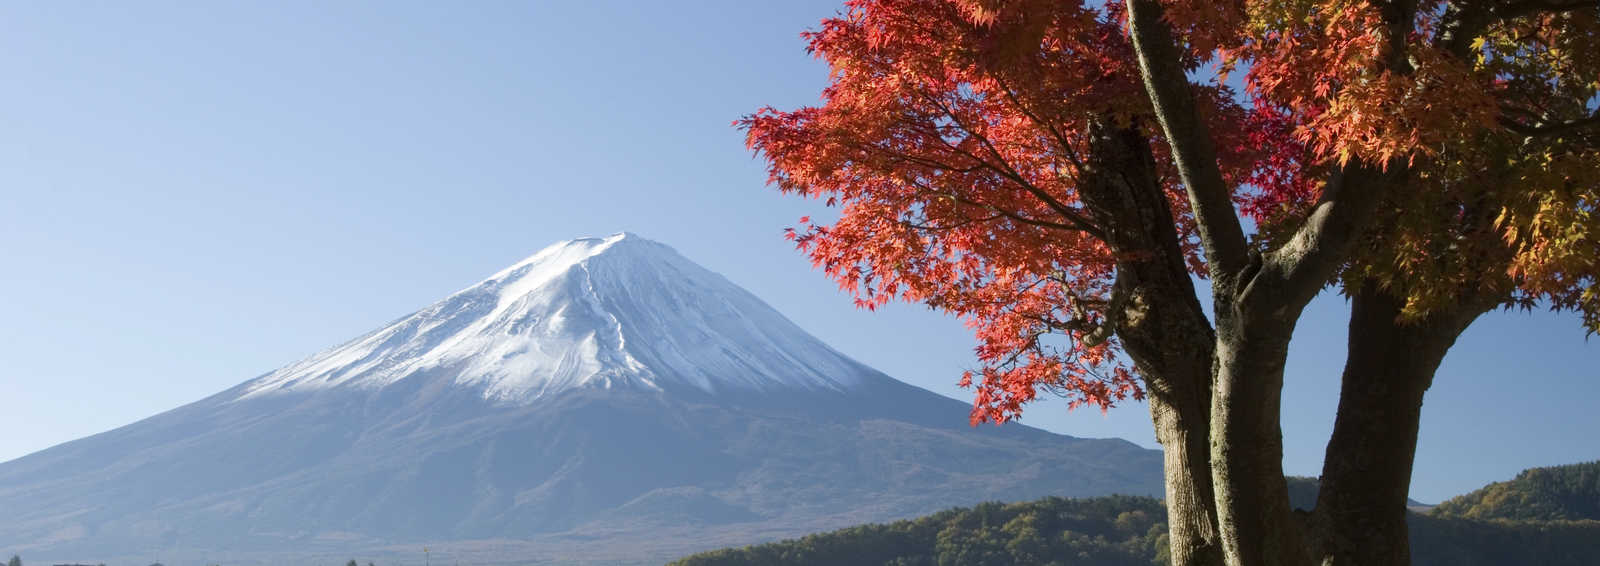 Mt Fuji in Autumn, Japan